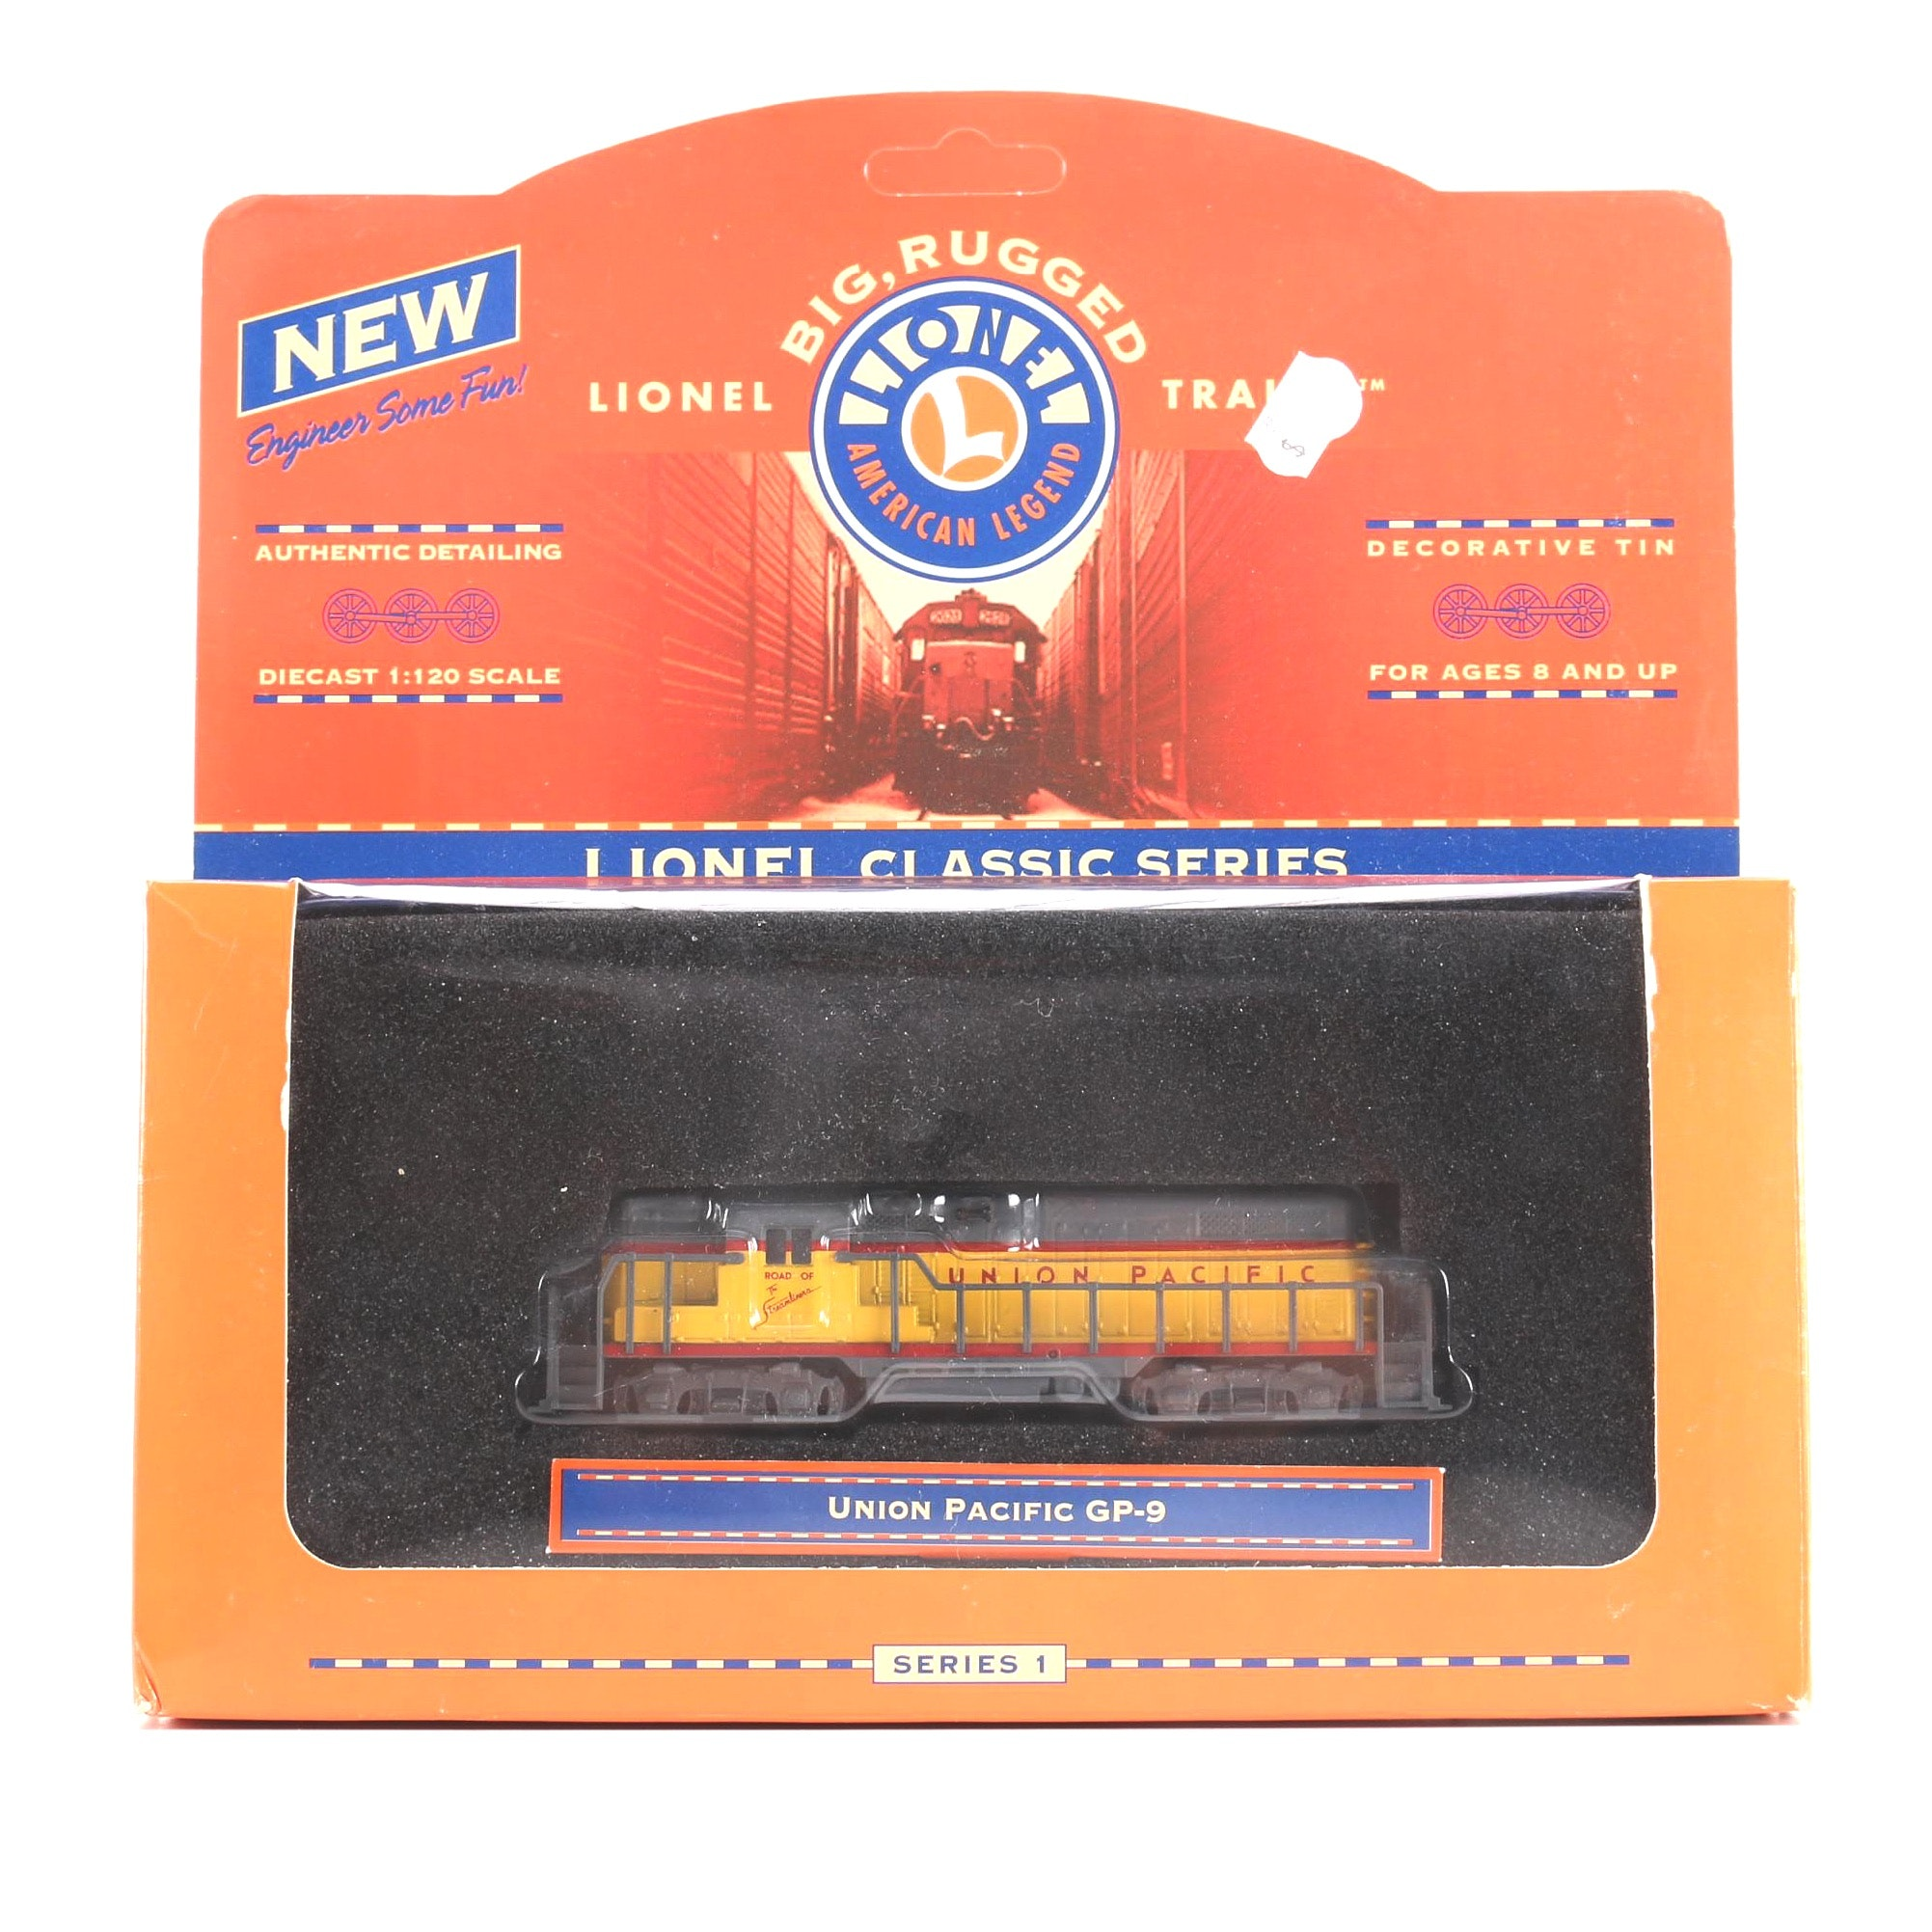 Lionel Classic Series Union Pacific GP-9 Engine